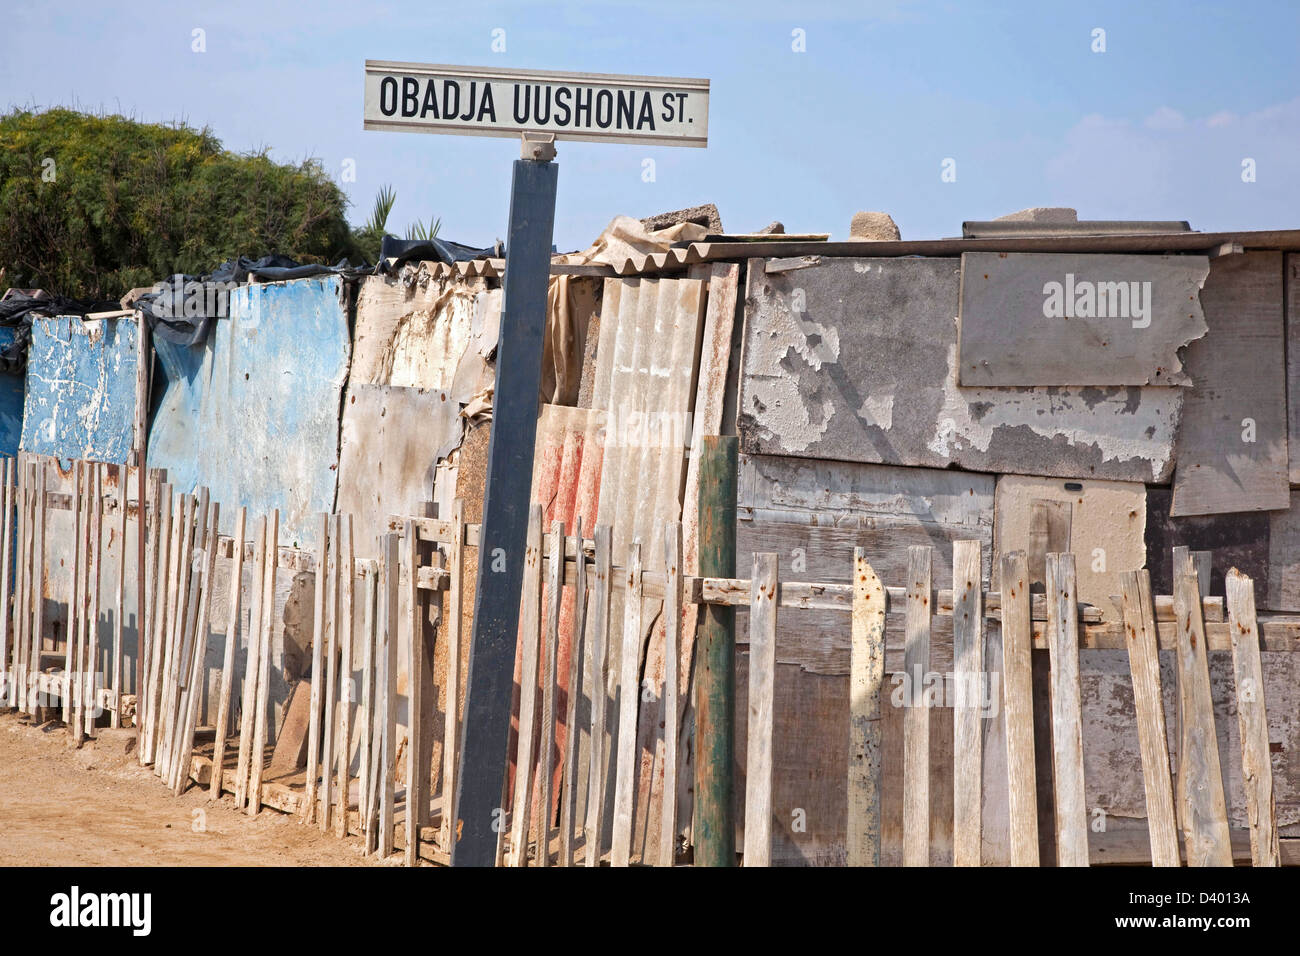 Street with improvised shacks, made from scrap materials at slum near Swakopmund, Namibia, South Africa - Stock Image